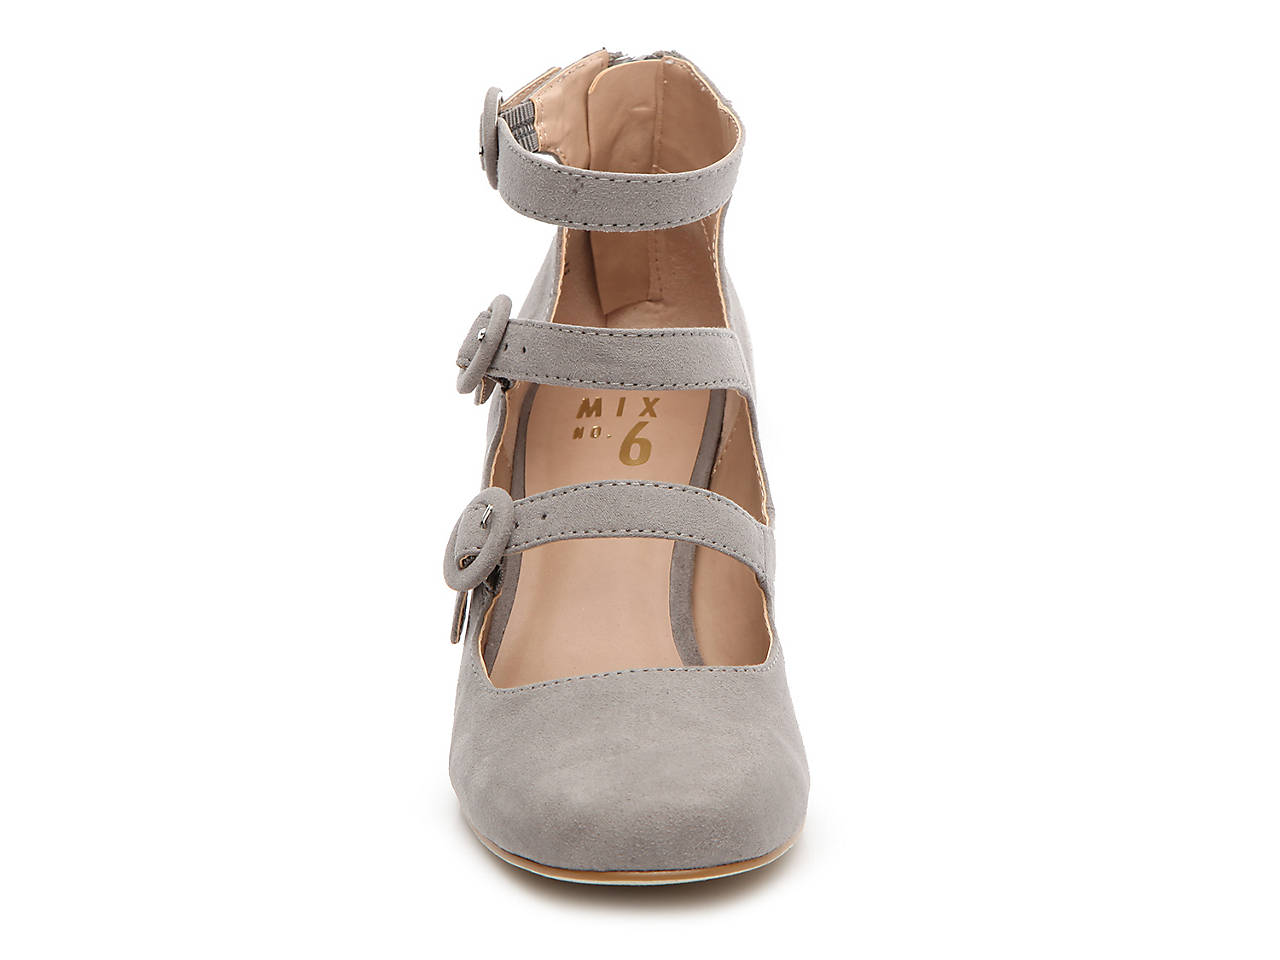 a5e631ecfea Mix No. 6 Deima Pump Women s Shoes